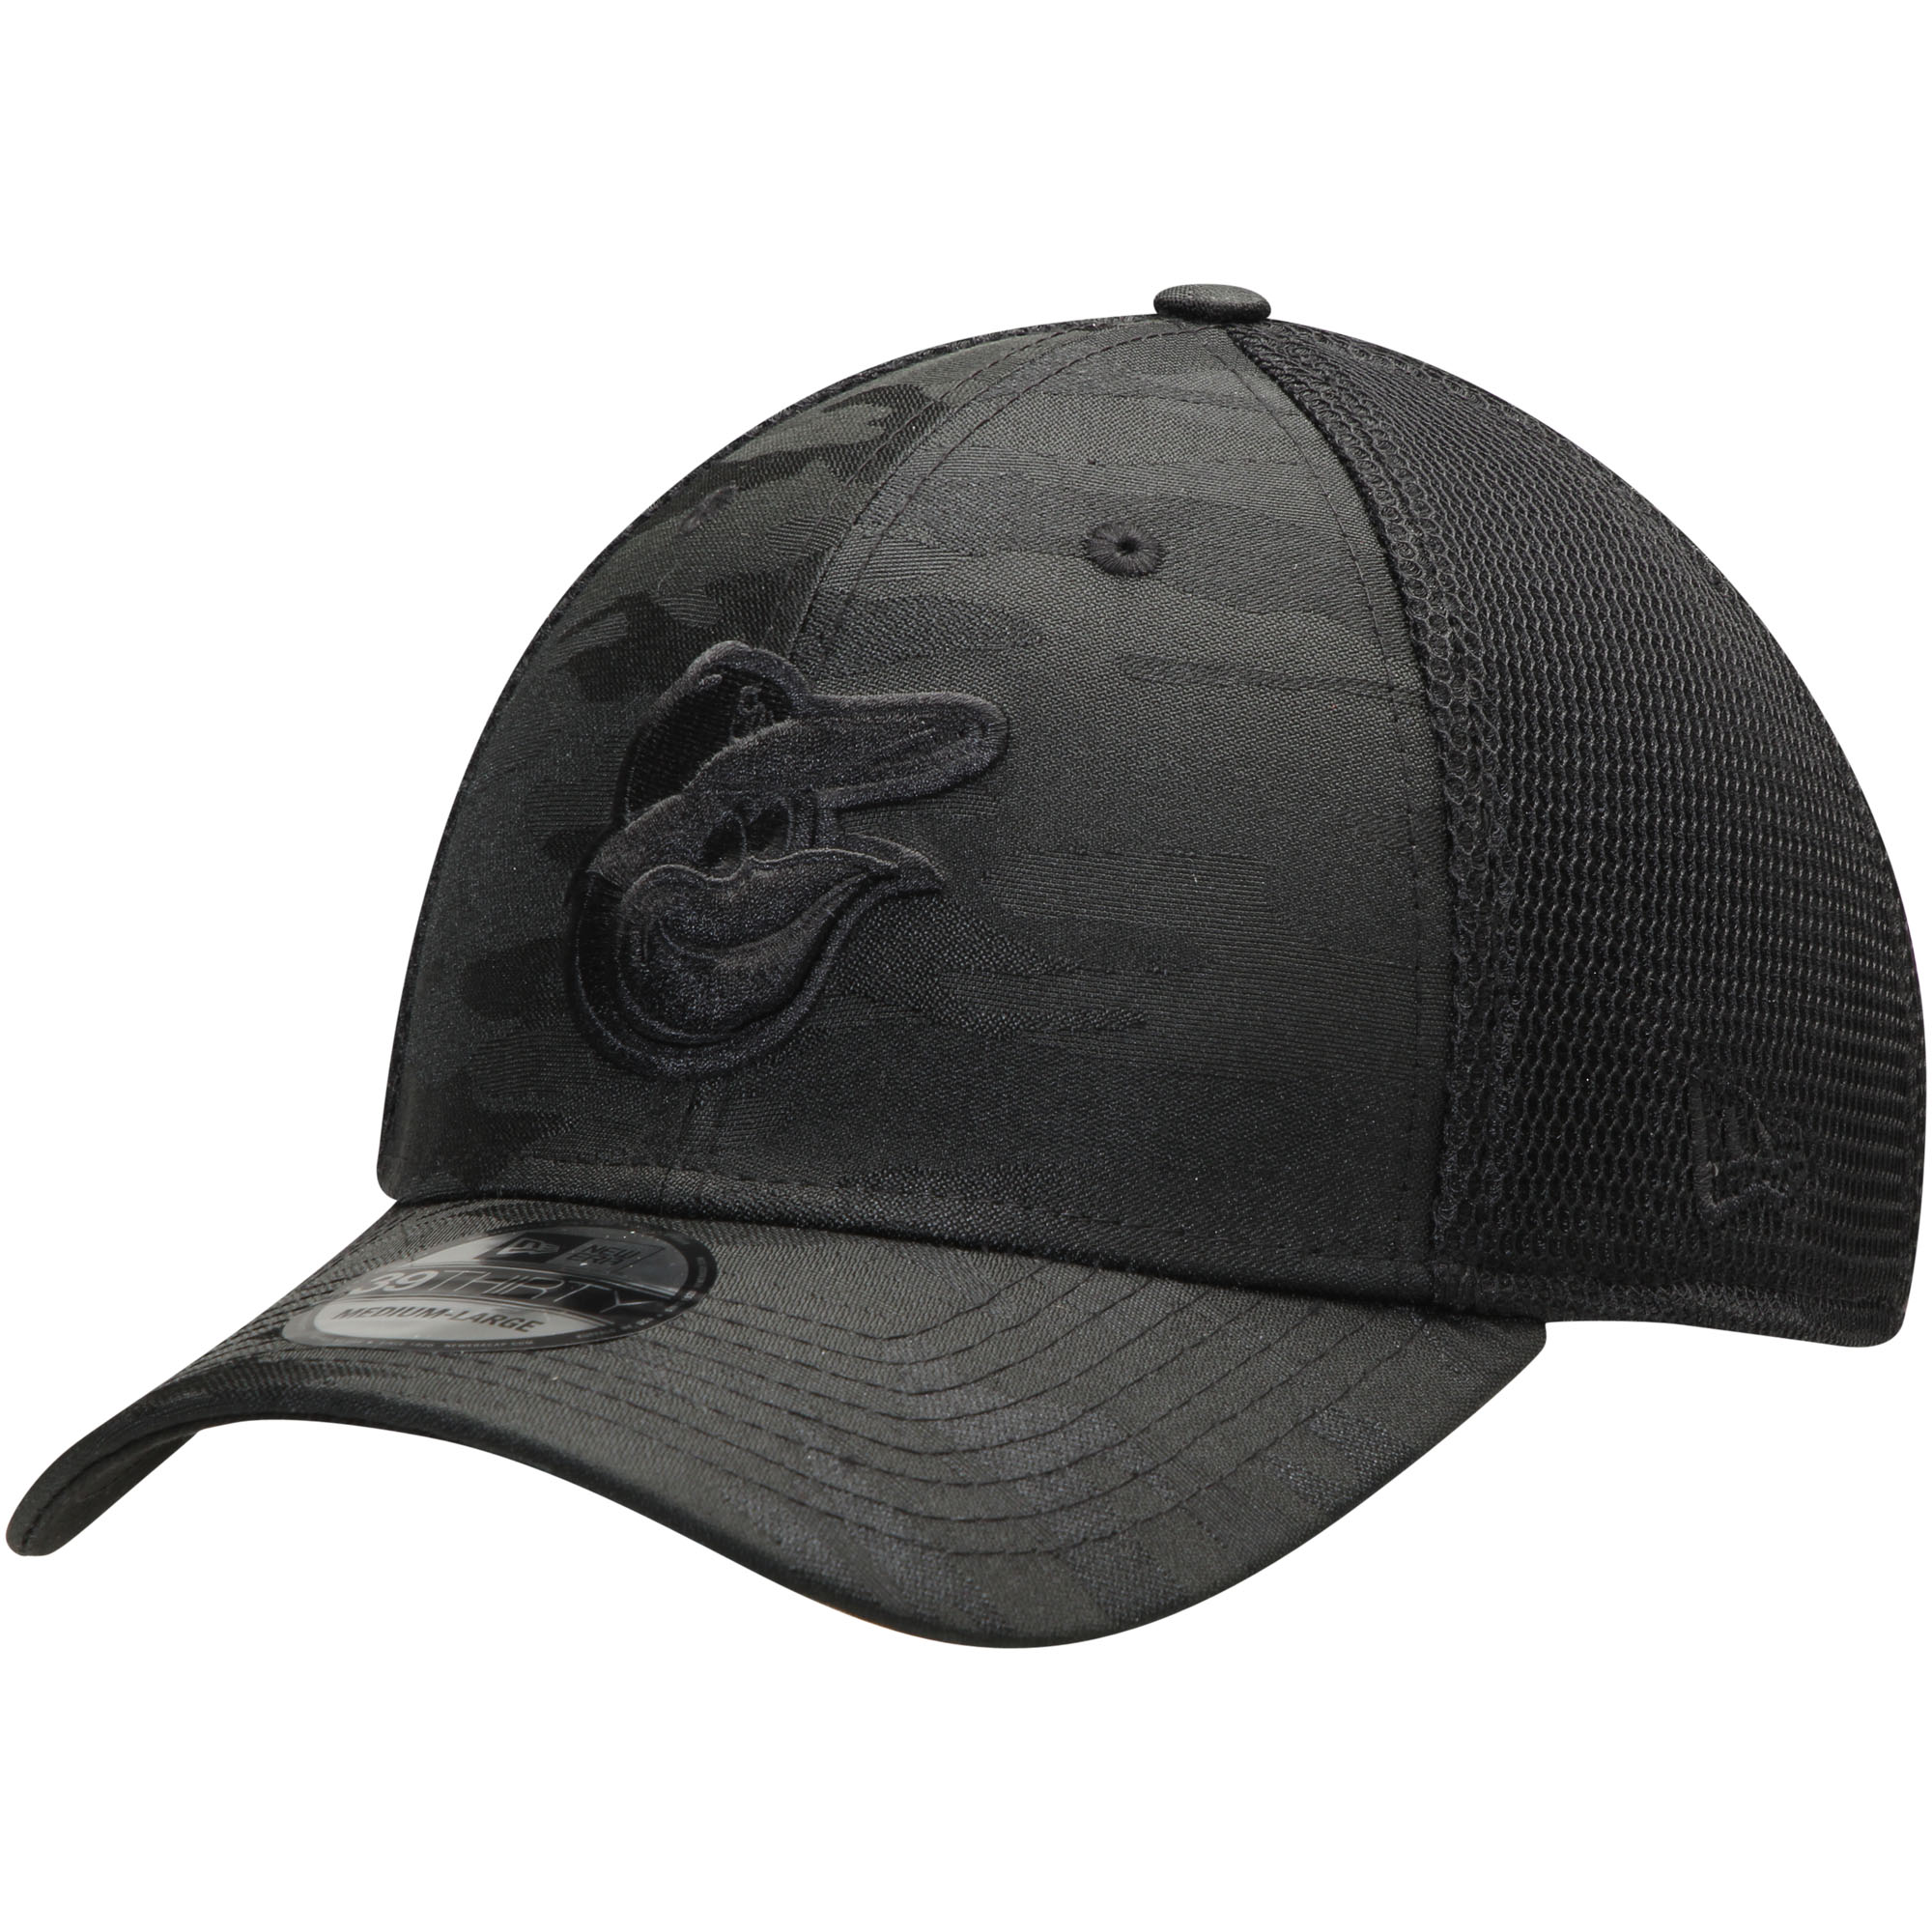 cheaper 71382 ac890 Baltimore Orioles New Era Camo Front Neo 39THIRTY Flex Hat - Black ...